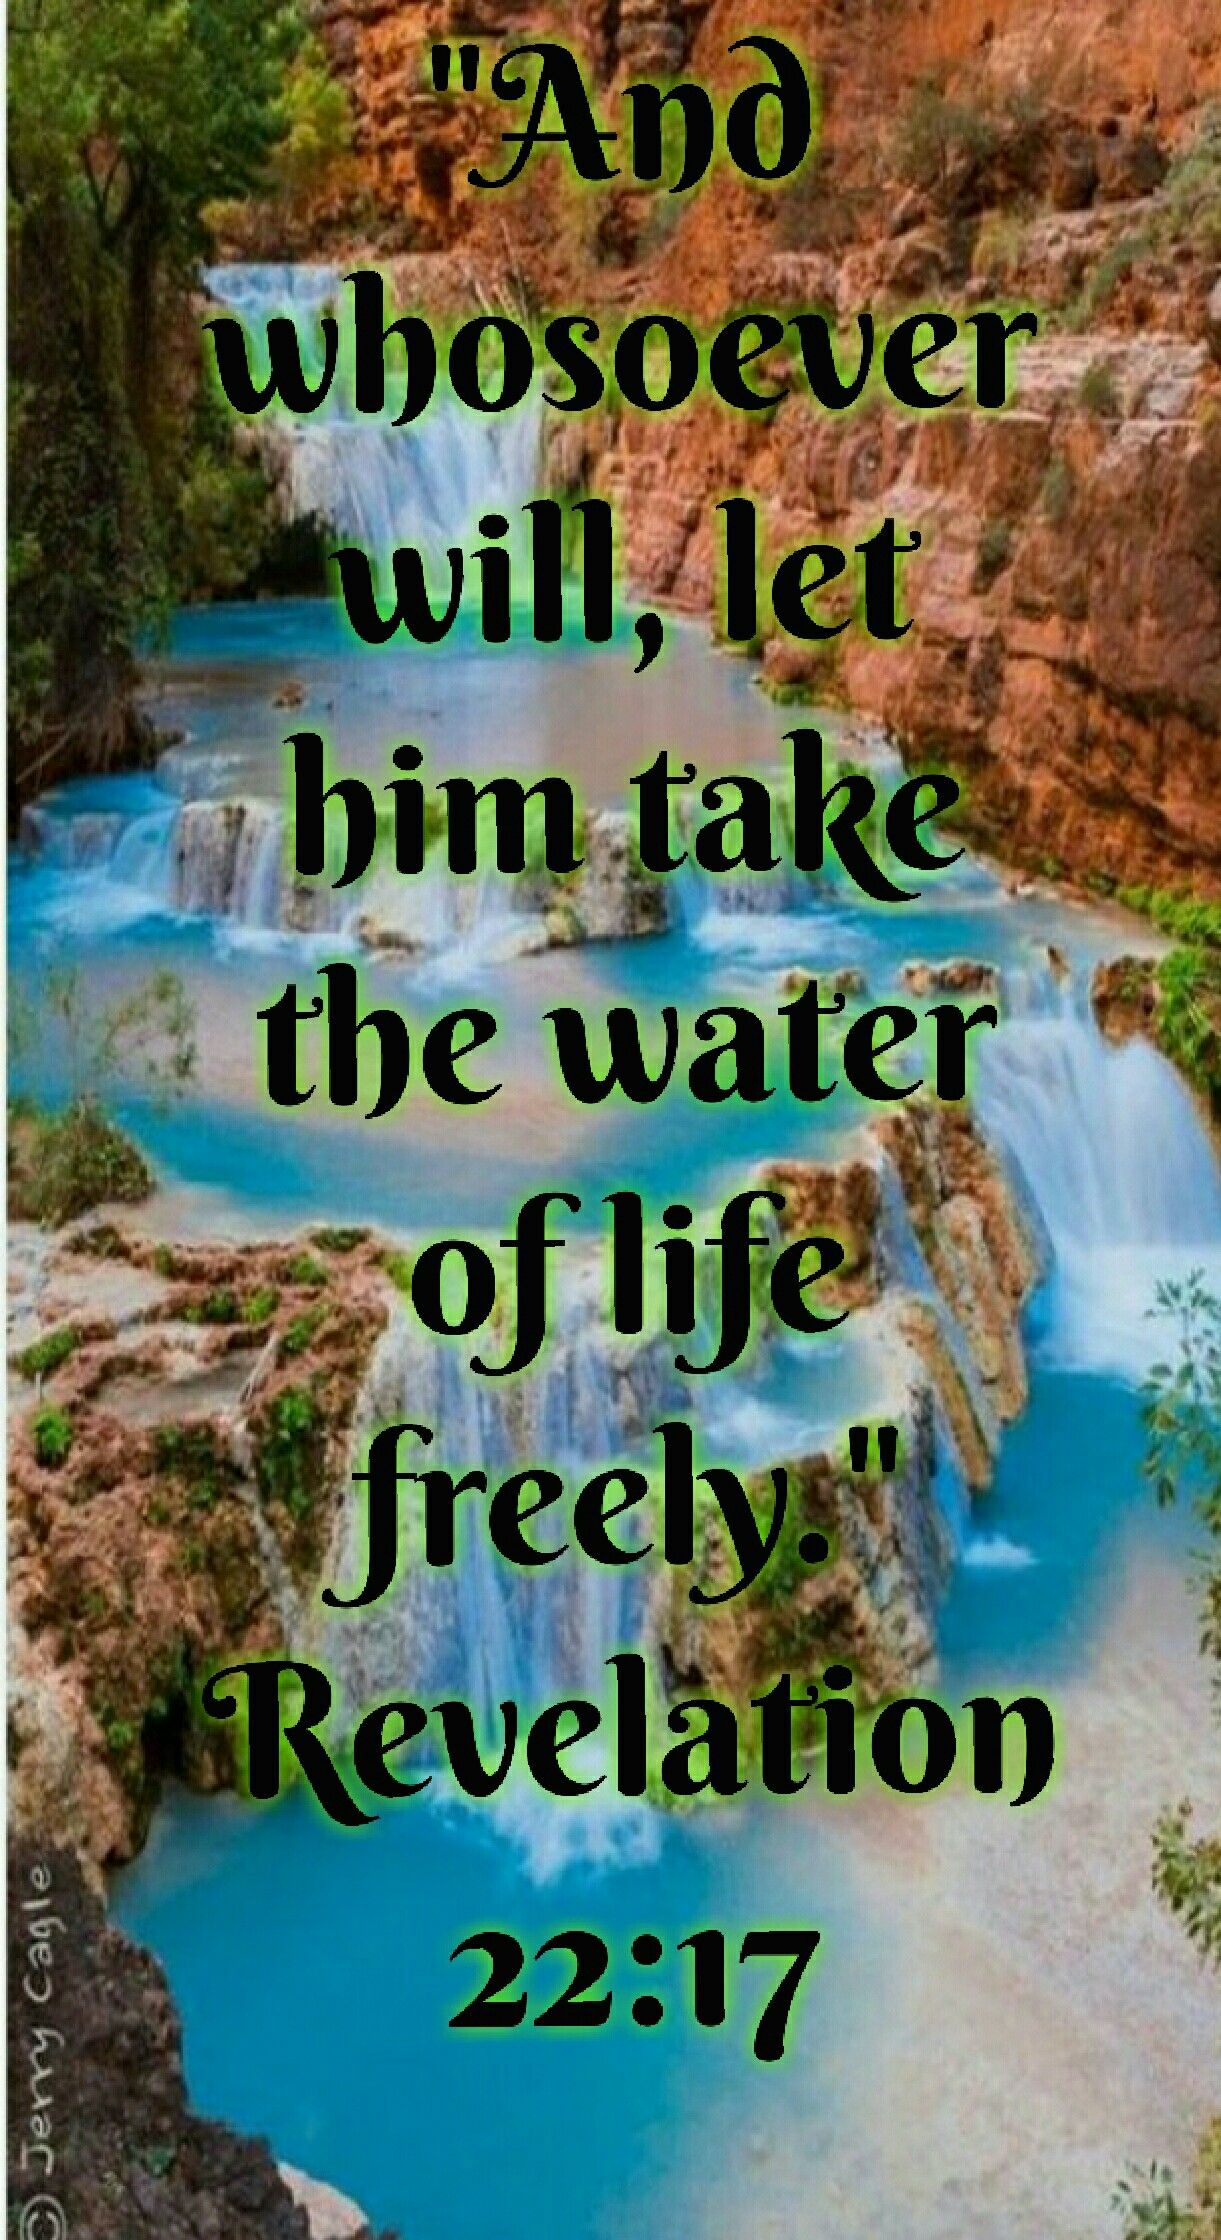 Revelation 22:17 (KJV) And the Spirit and the bride say, Come  And